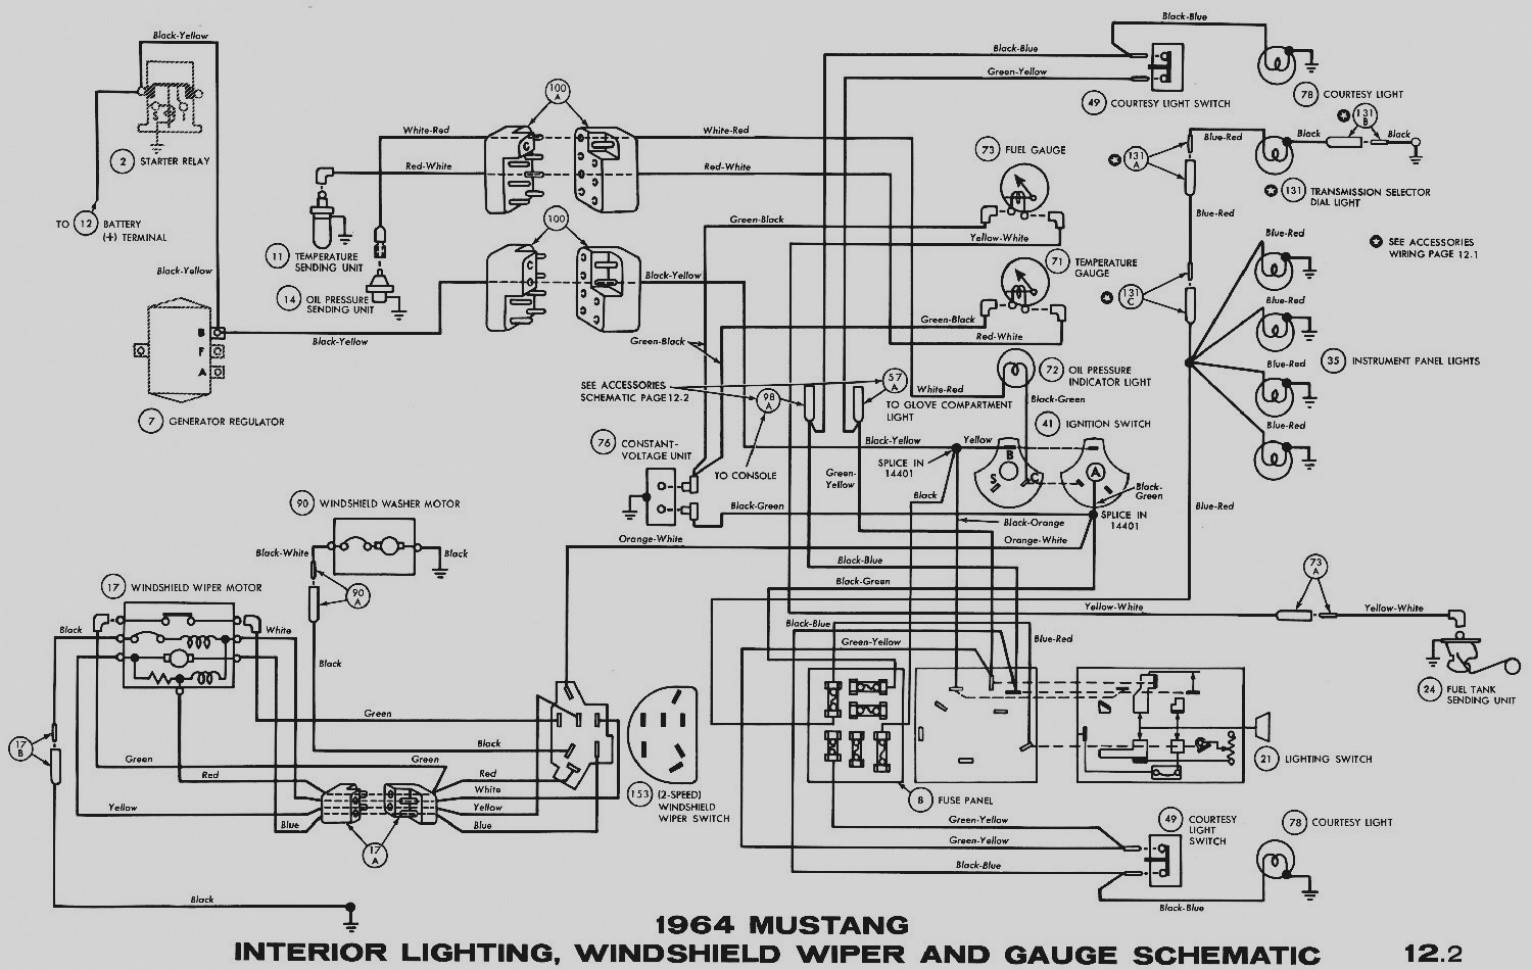 1964 Mustang Tail Light Wiring Diagram Library Impala 89 Chevy Schematic Auto Electrical Jeep